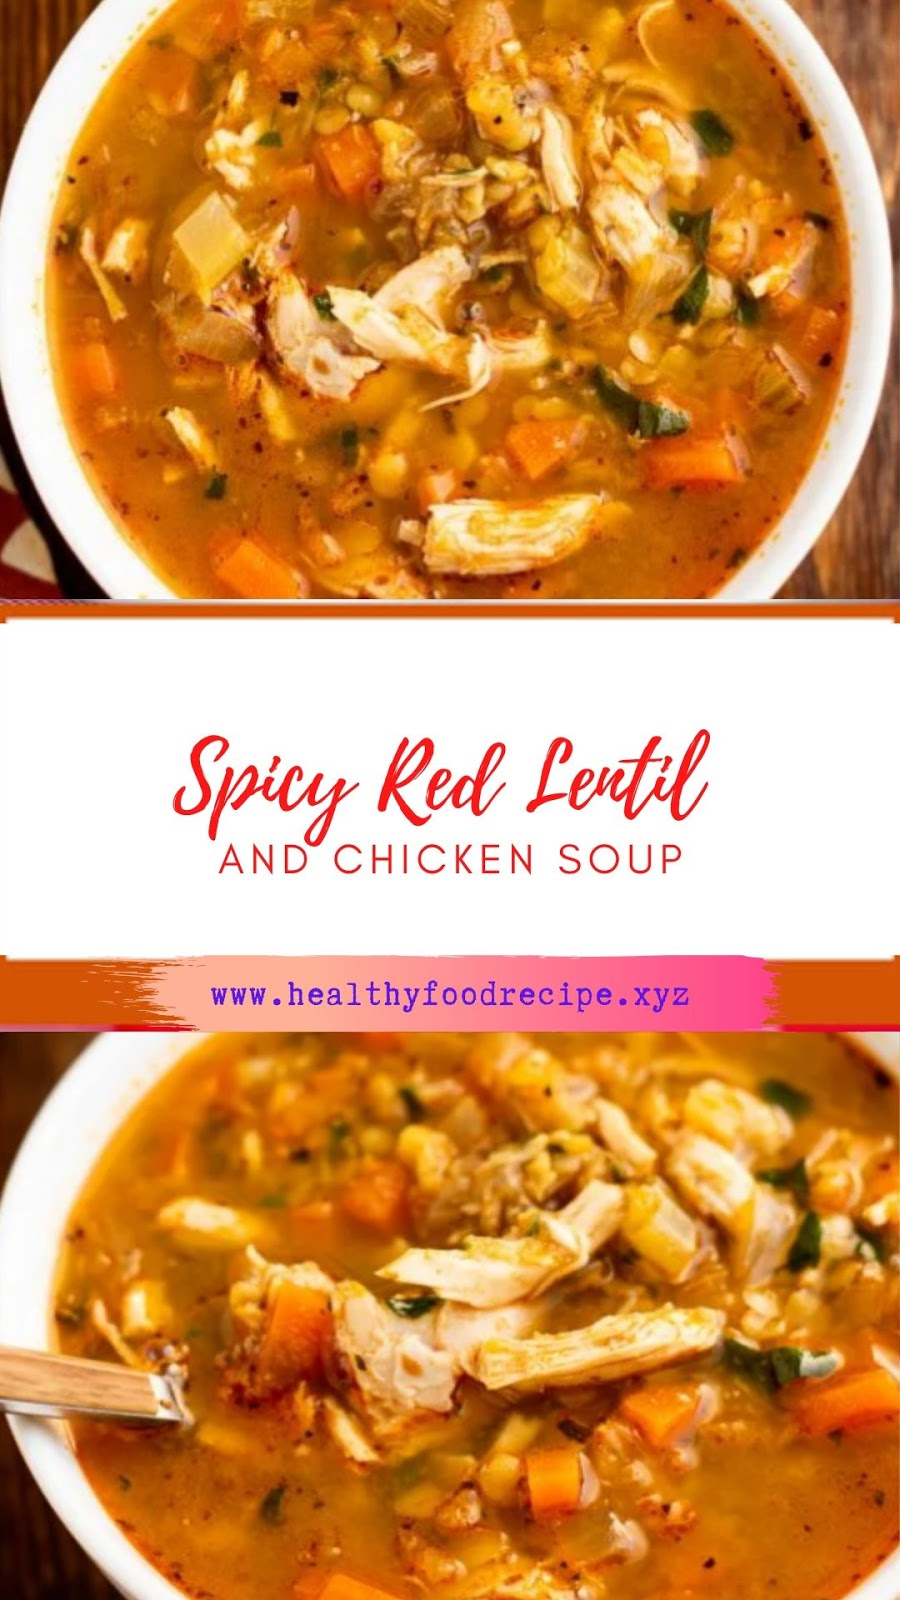 Spicy Red Lentil and Chicken Soup